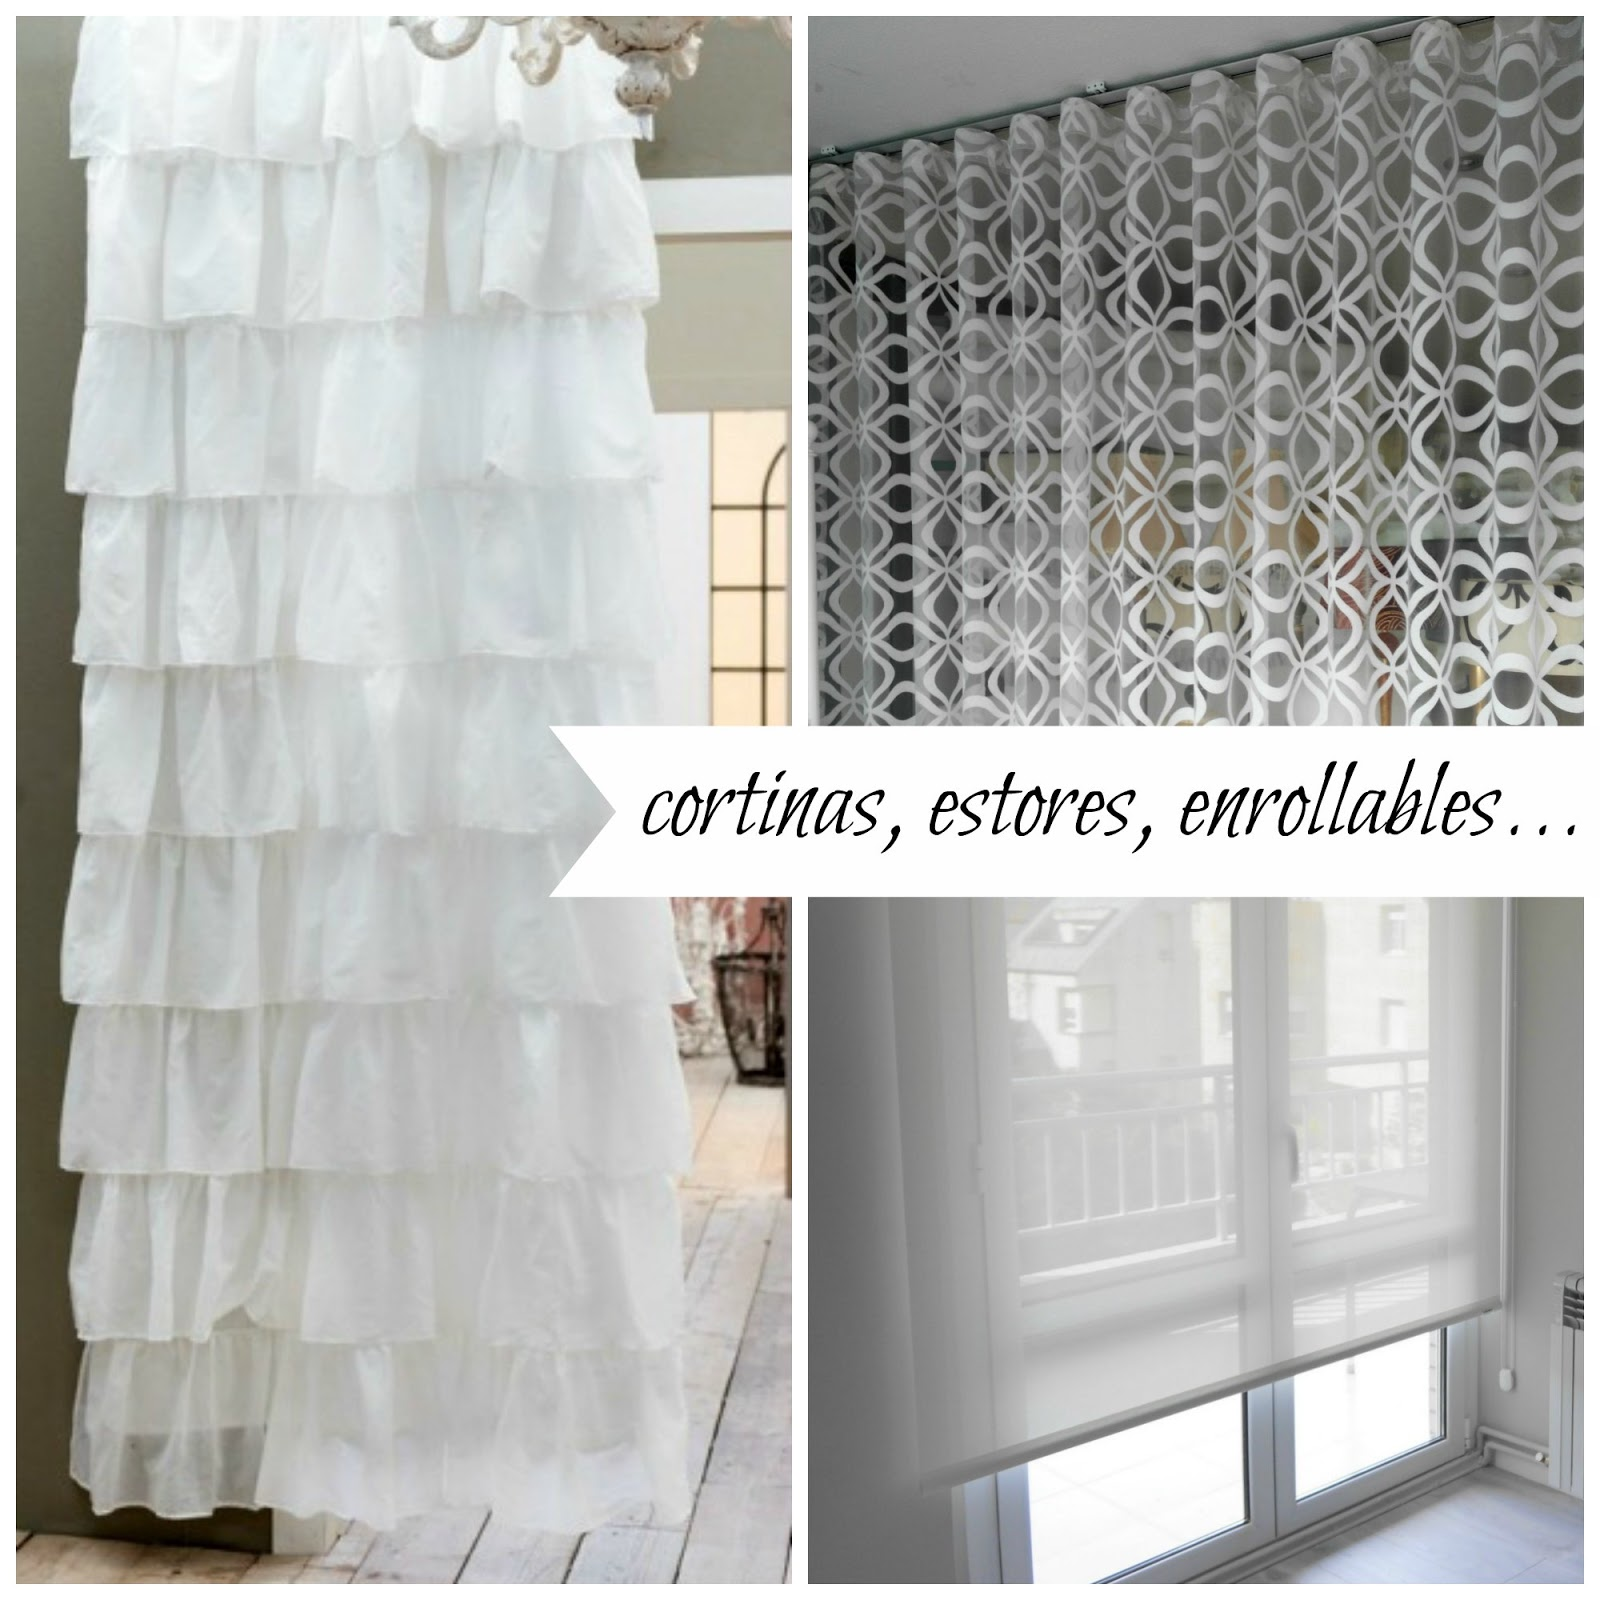 cortinas_confeccionadas_online_estores_enrollables_screen_a_medida_cortinasymas